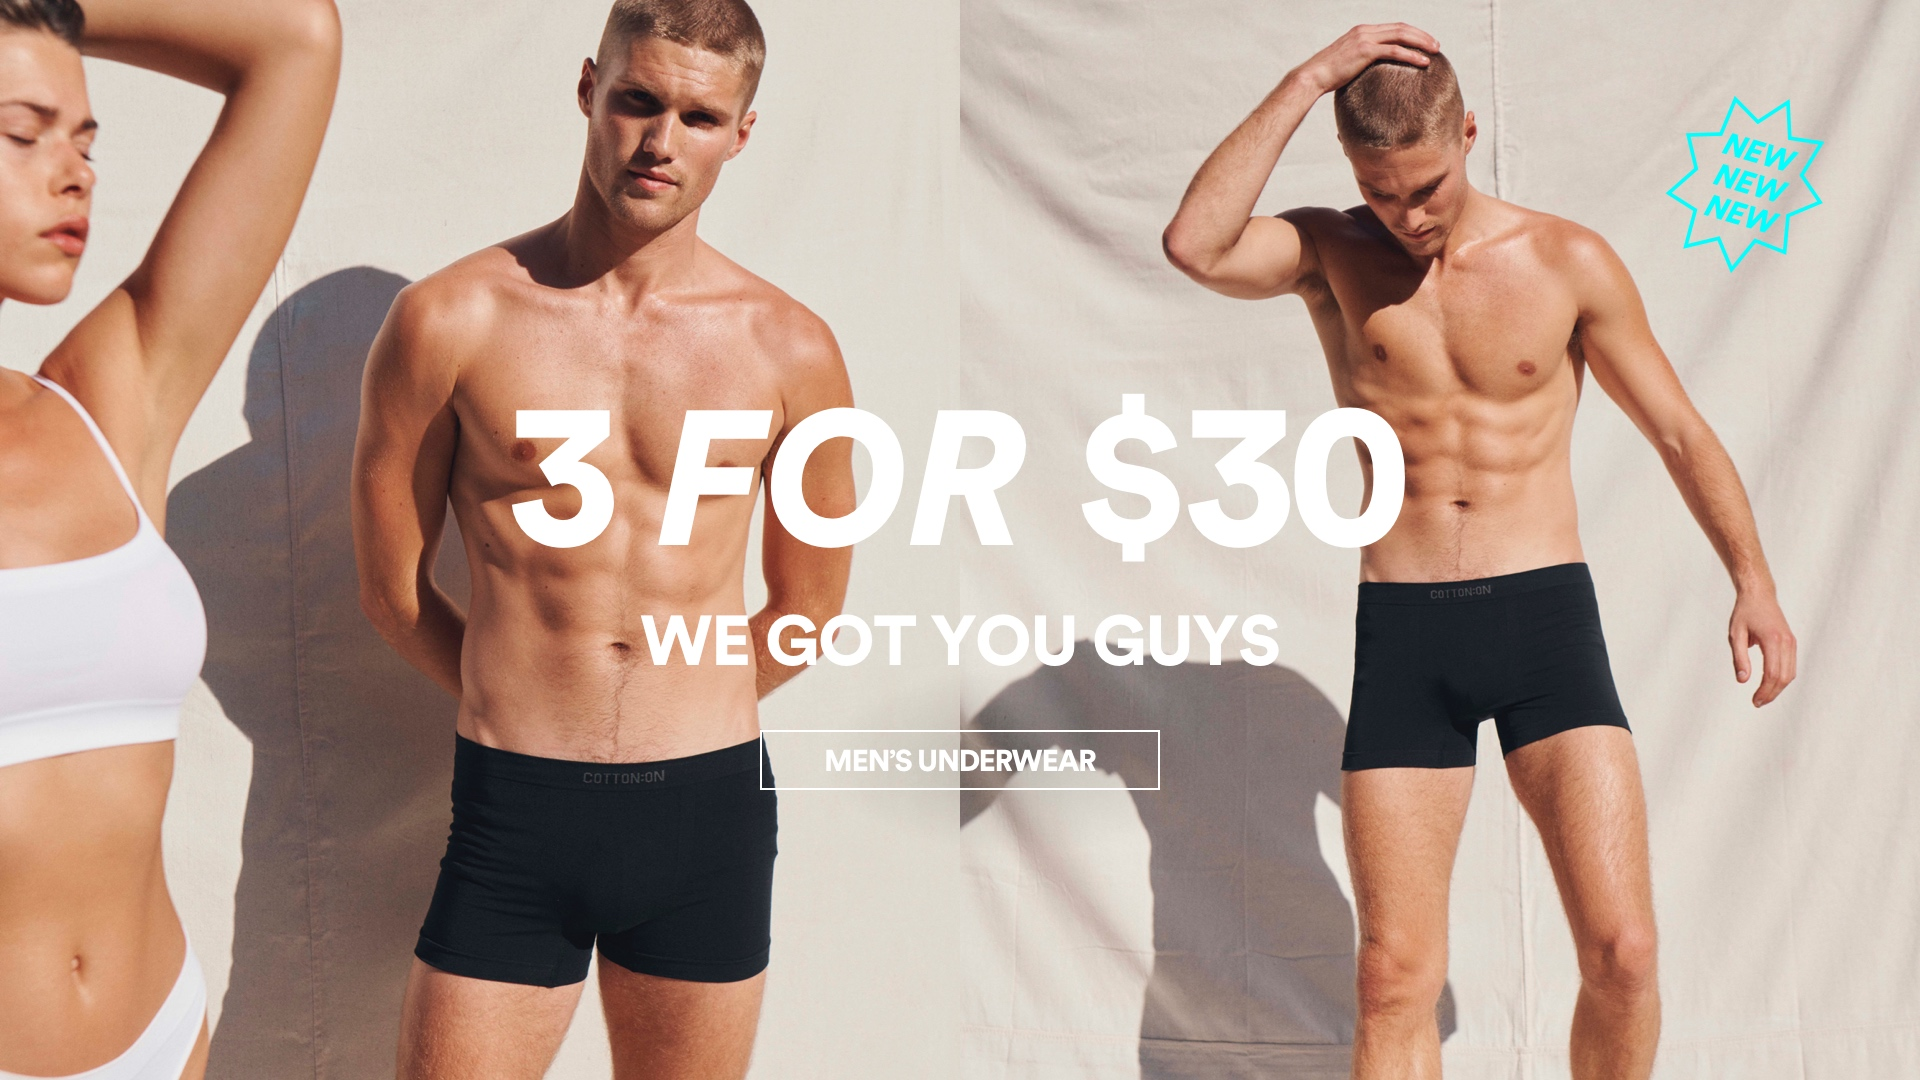 Men's Trunks 3 for $30. Click to shop.